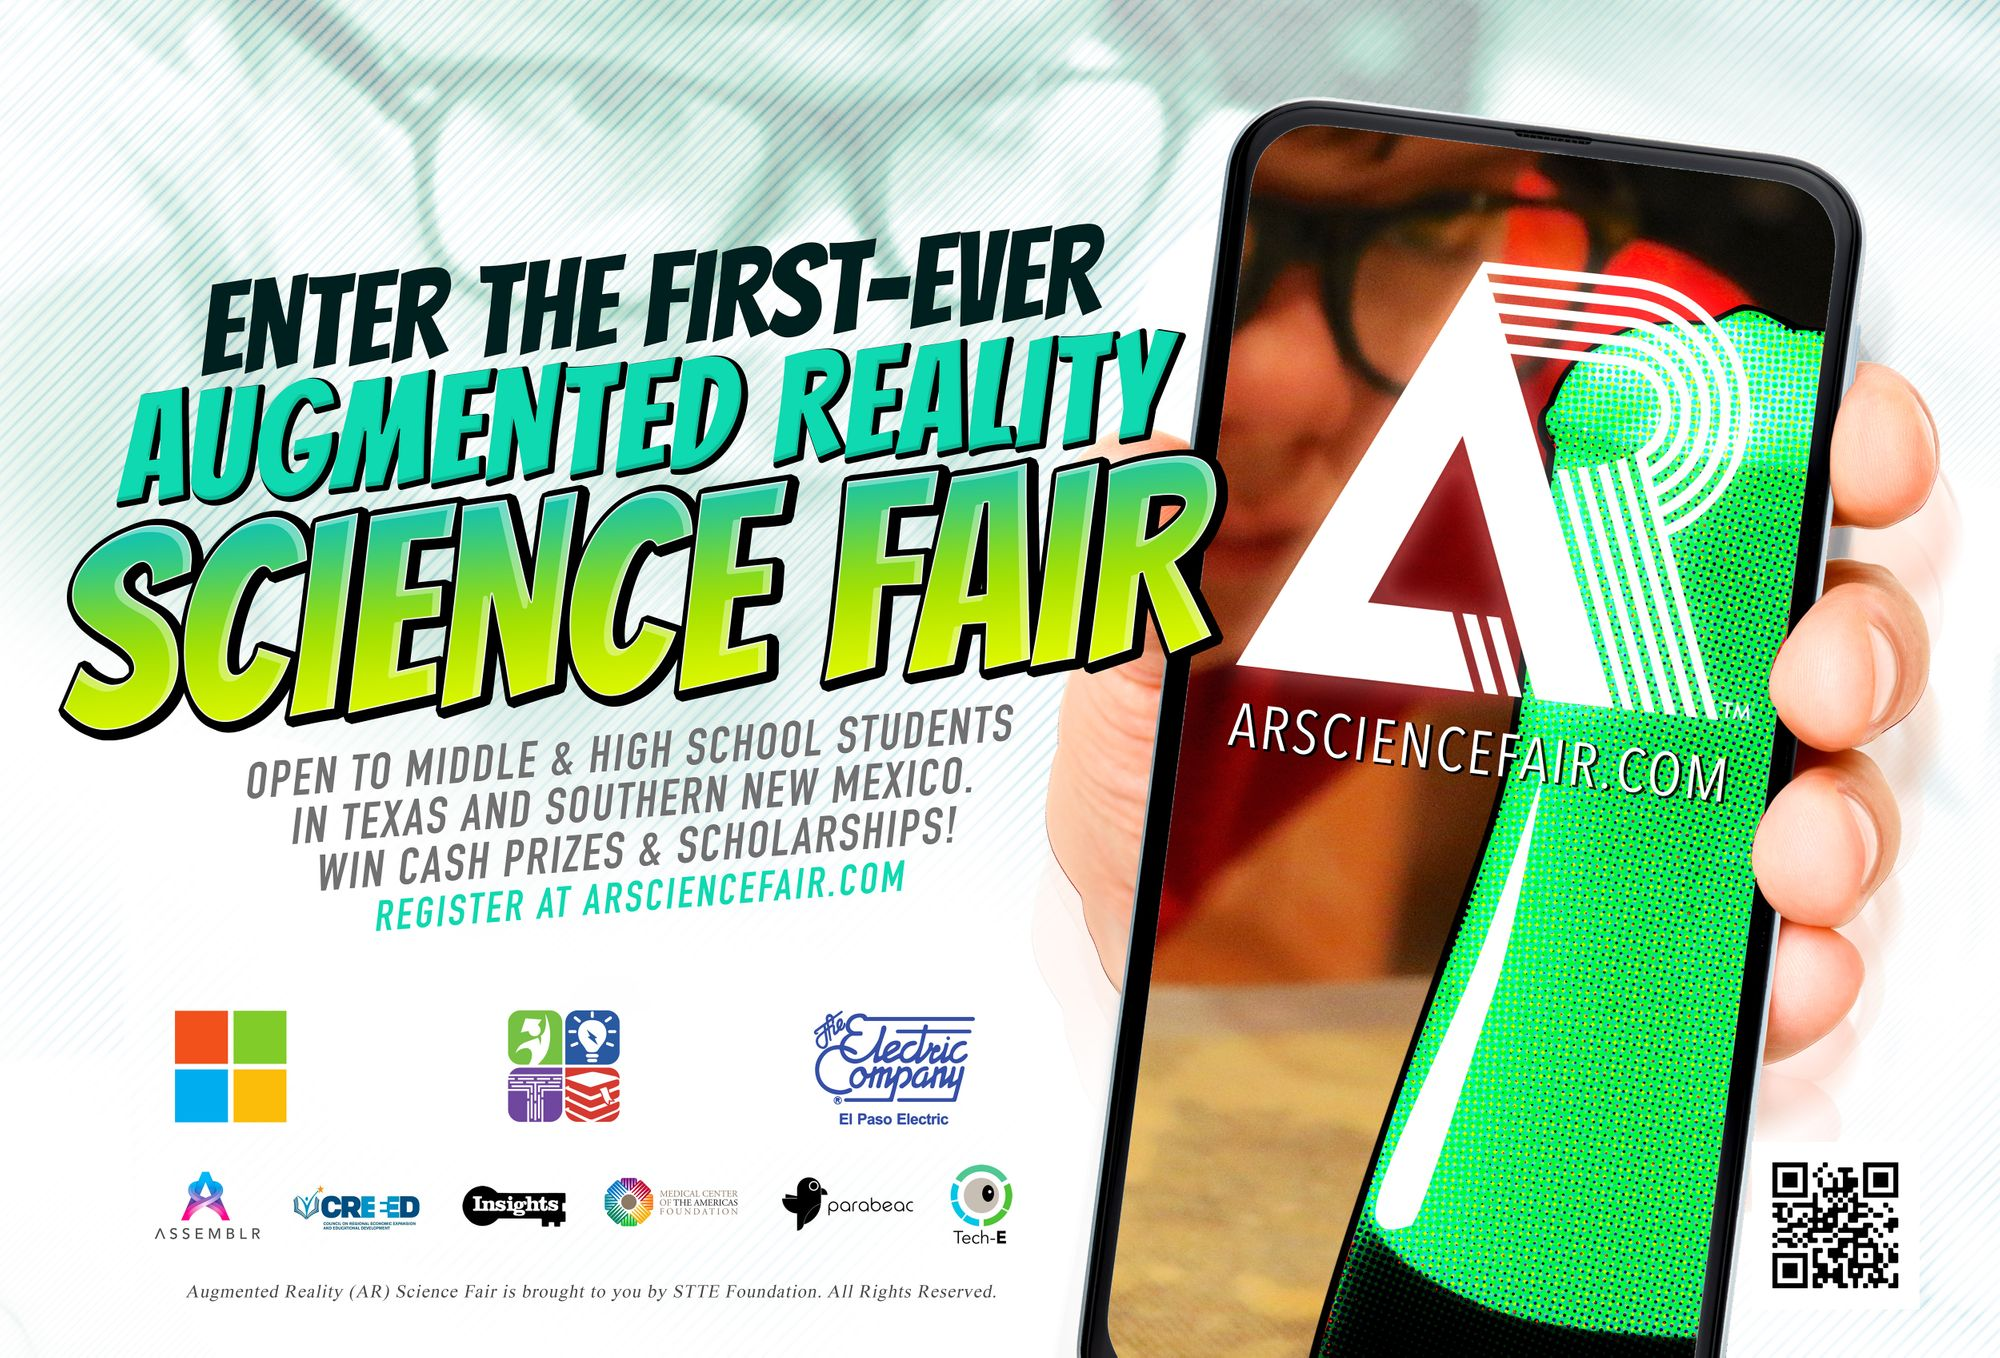 Augmented Reality Science Fair - Assemblr